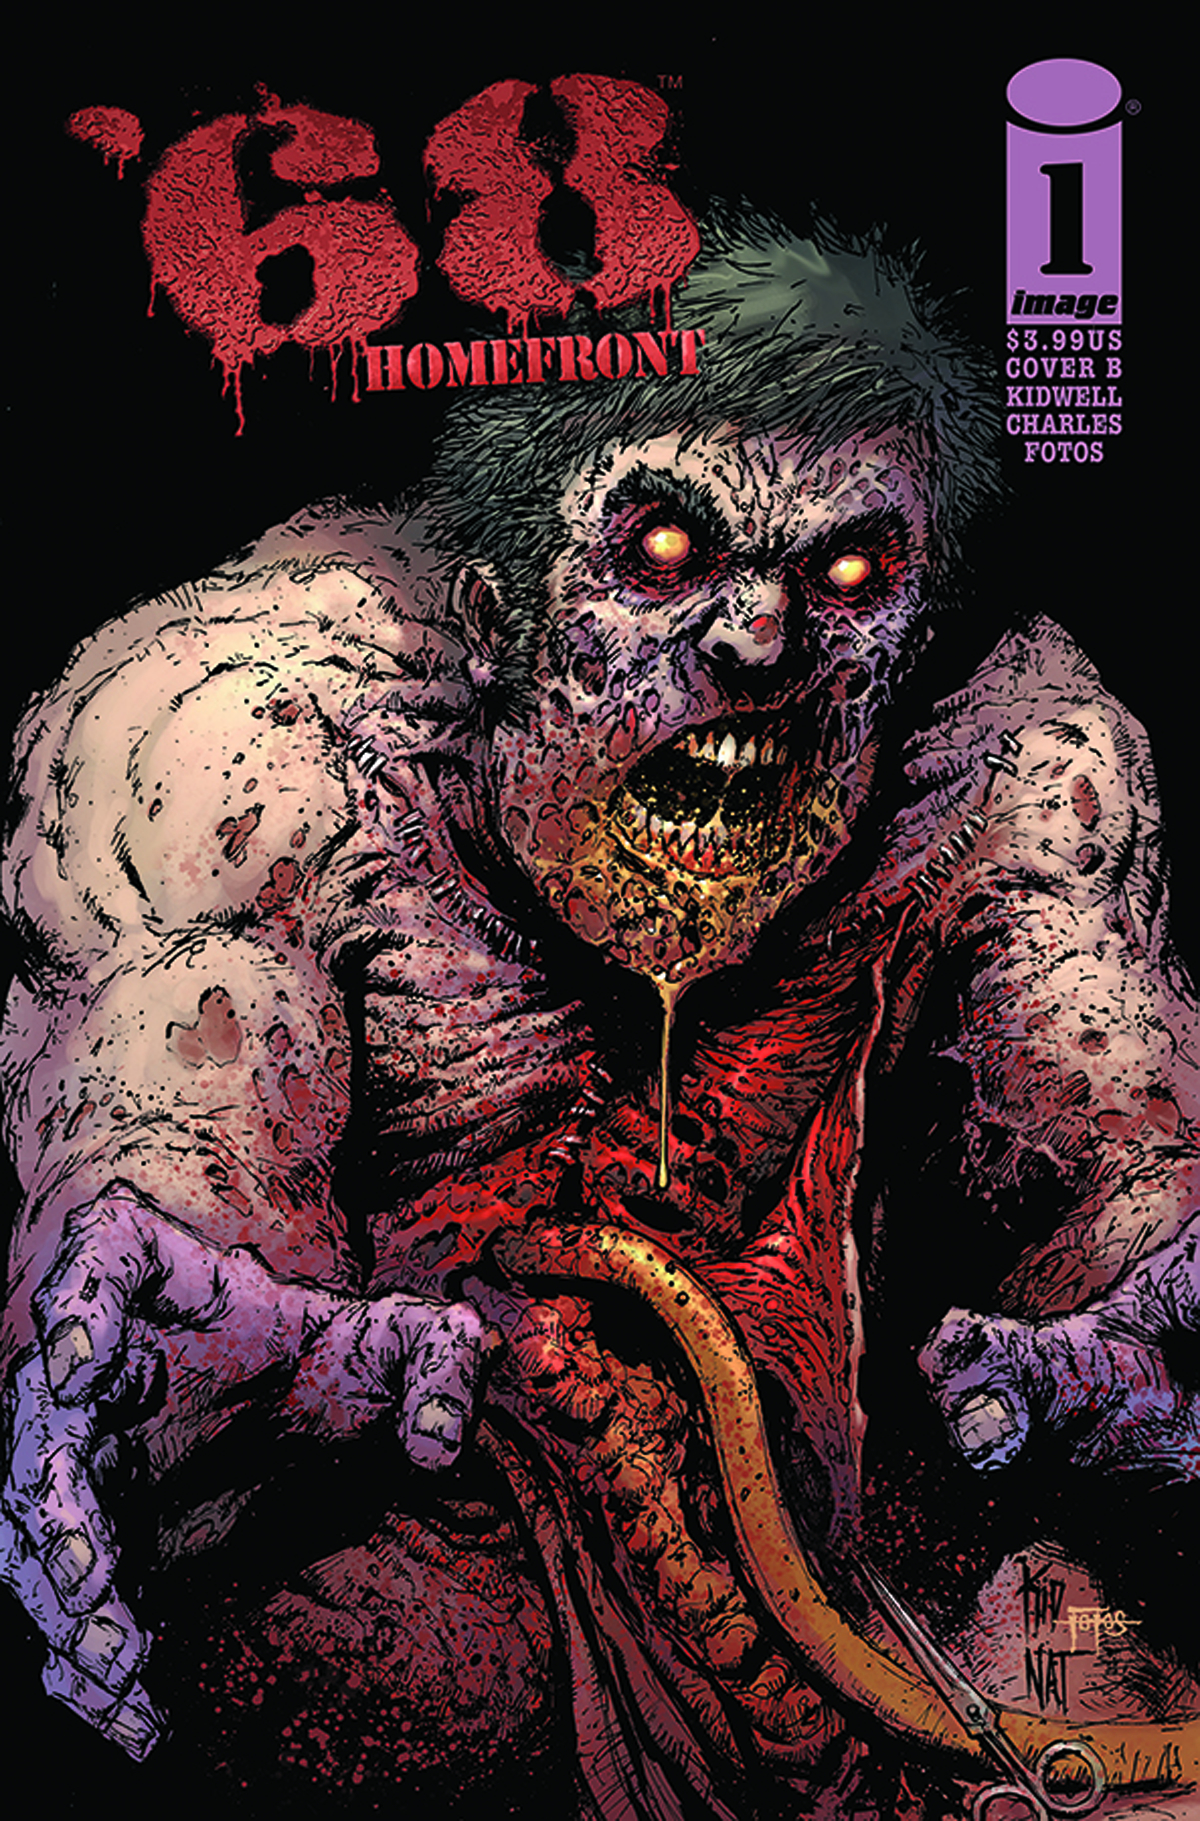 68 HOMEFRONT #1 (OF 4) CVR B KIDWELL & JONES & FOTOS